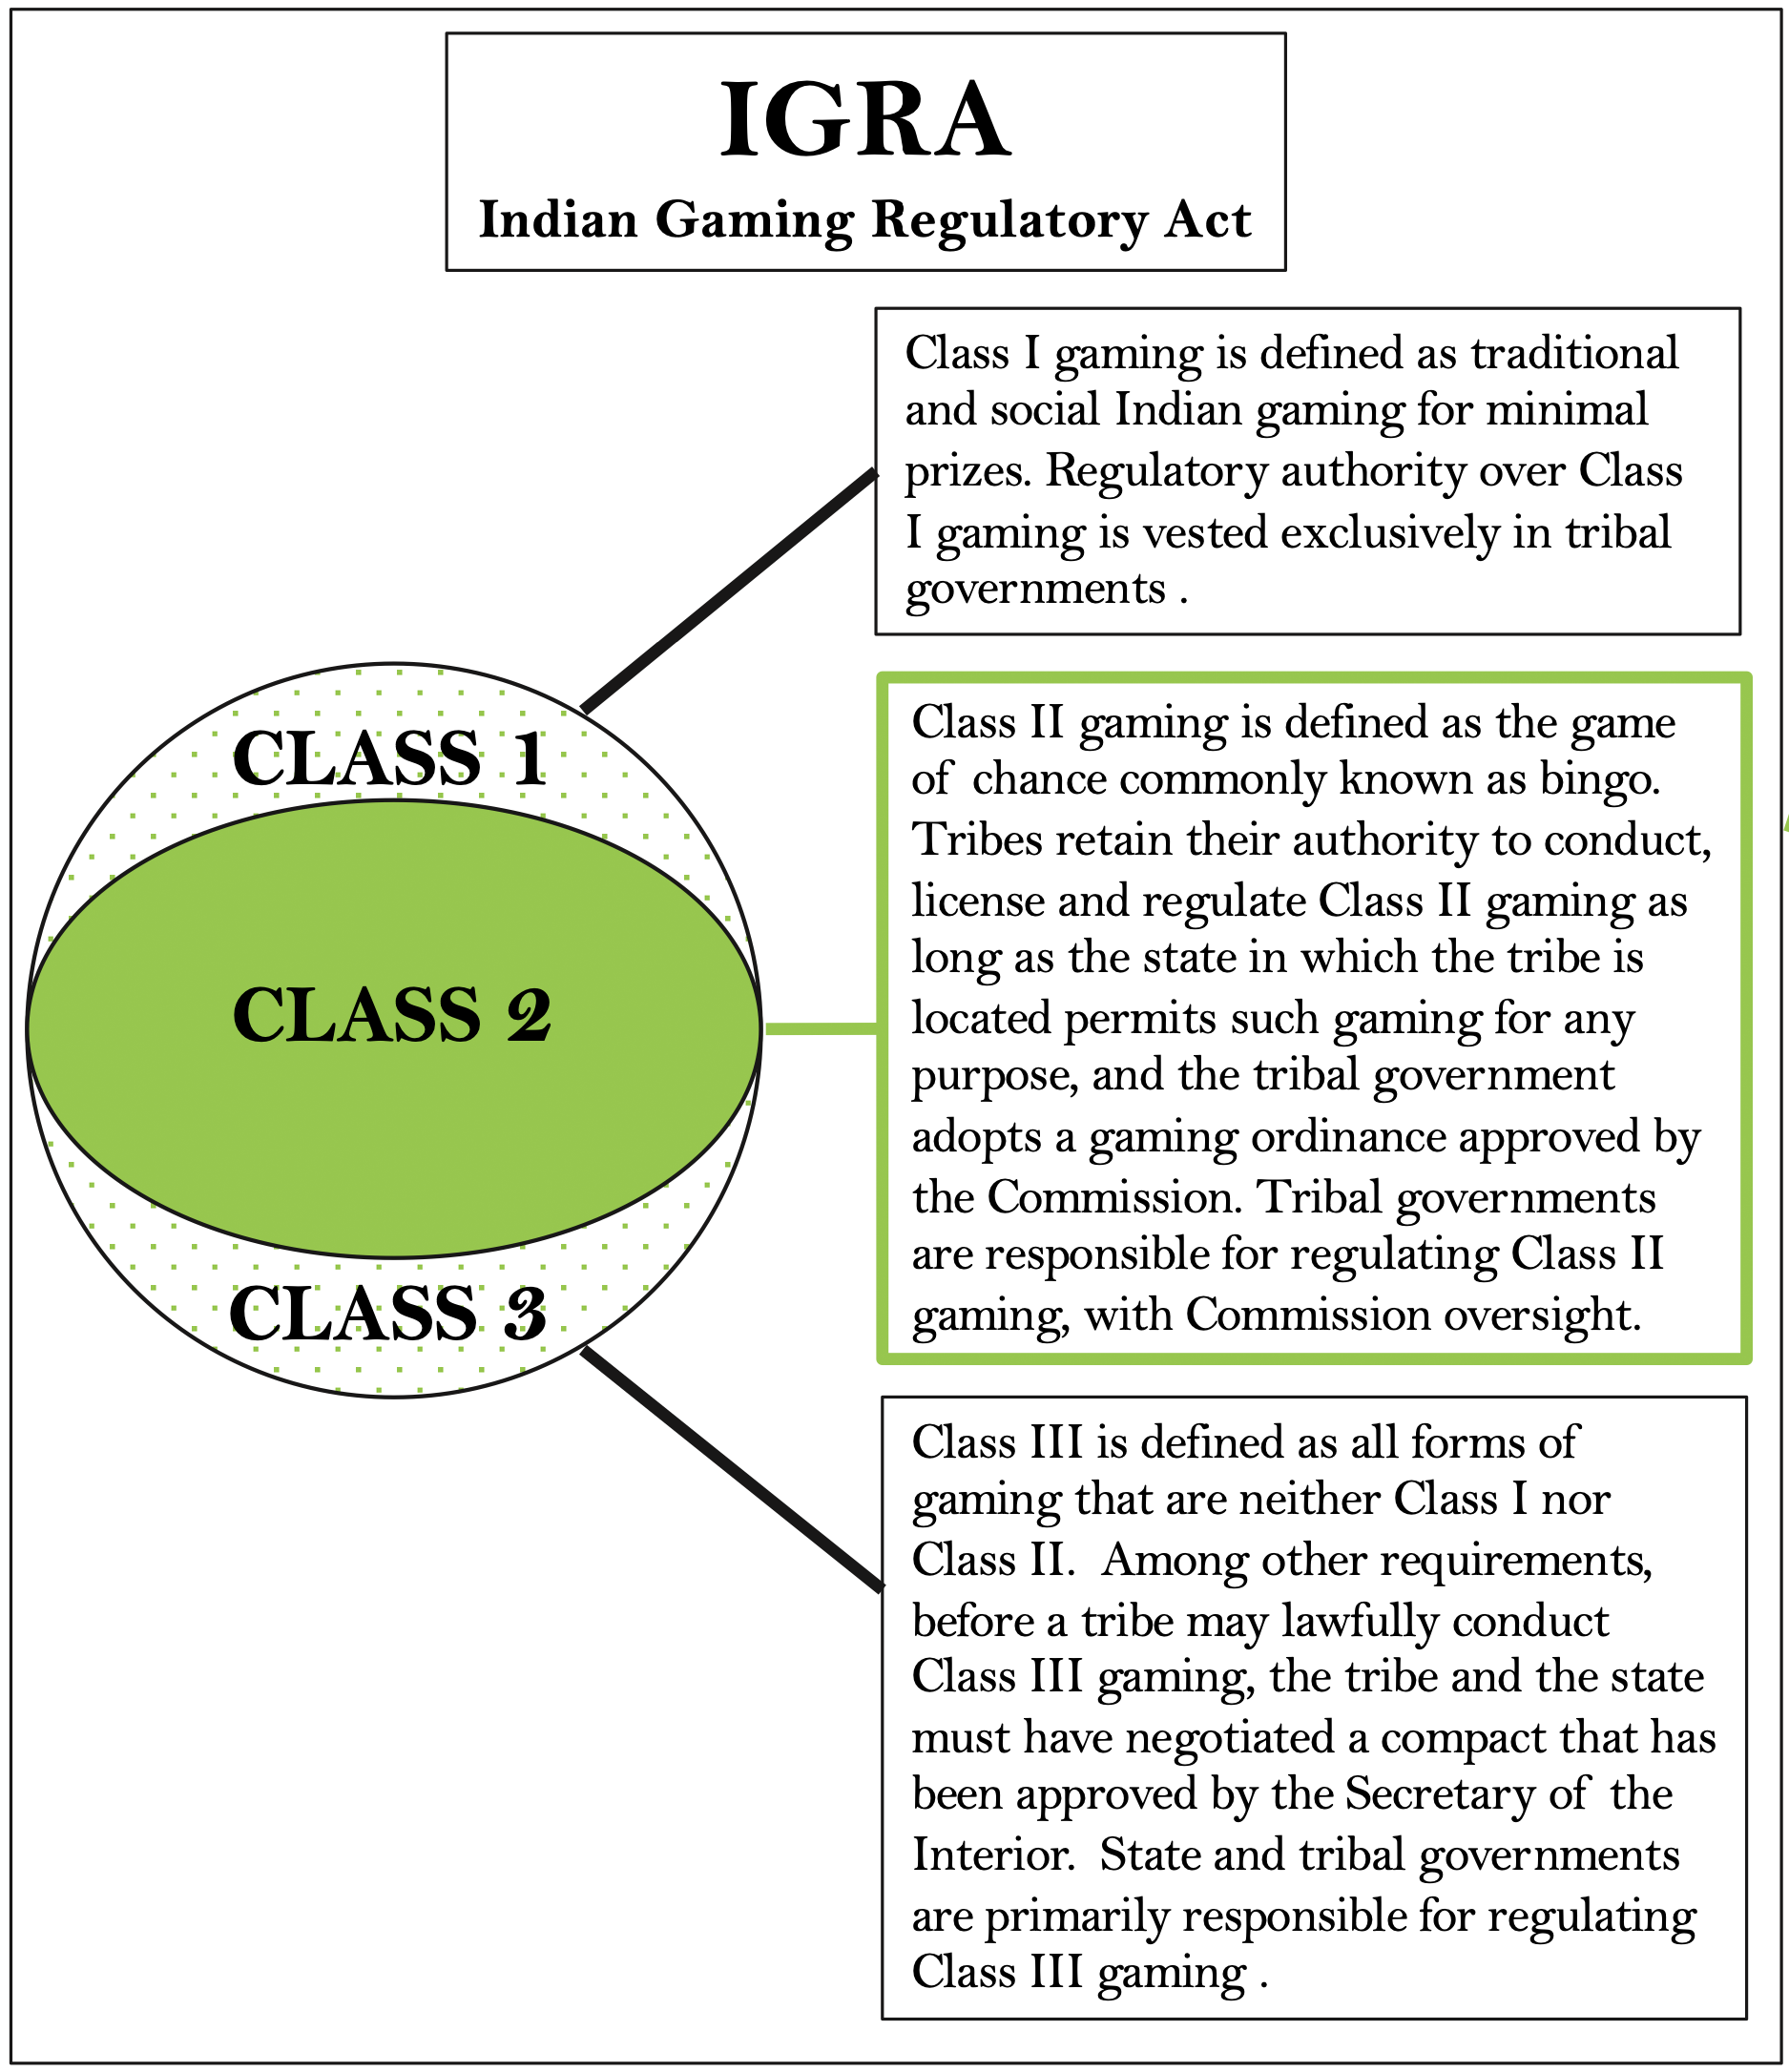 Indian Gaming Regulatory Act